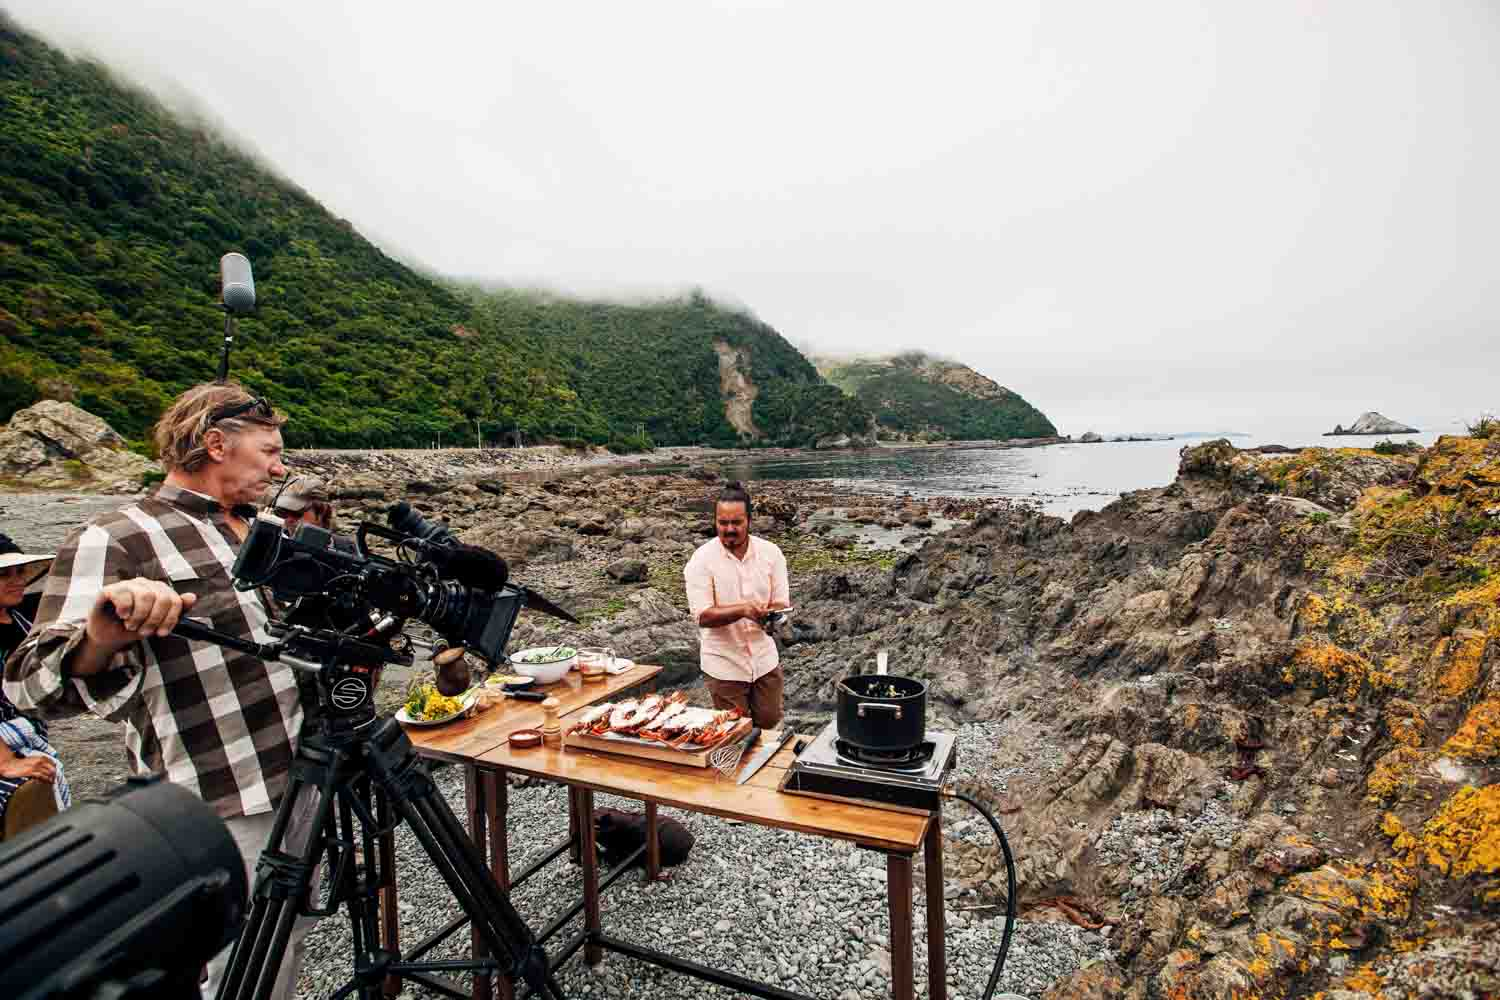 Cooking crayfish in Kaikoura, New Zealand.